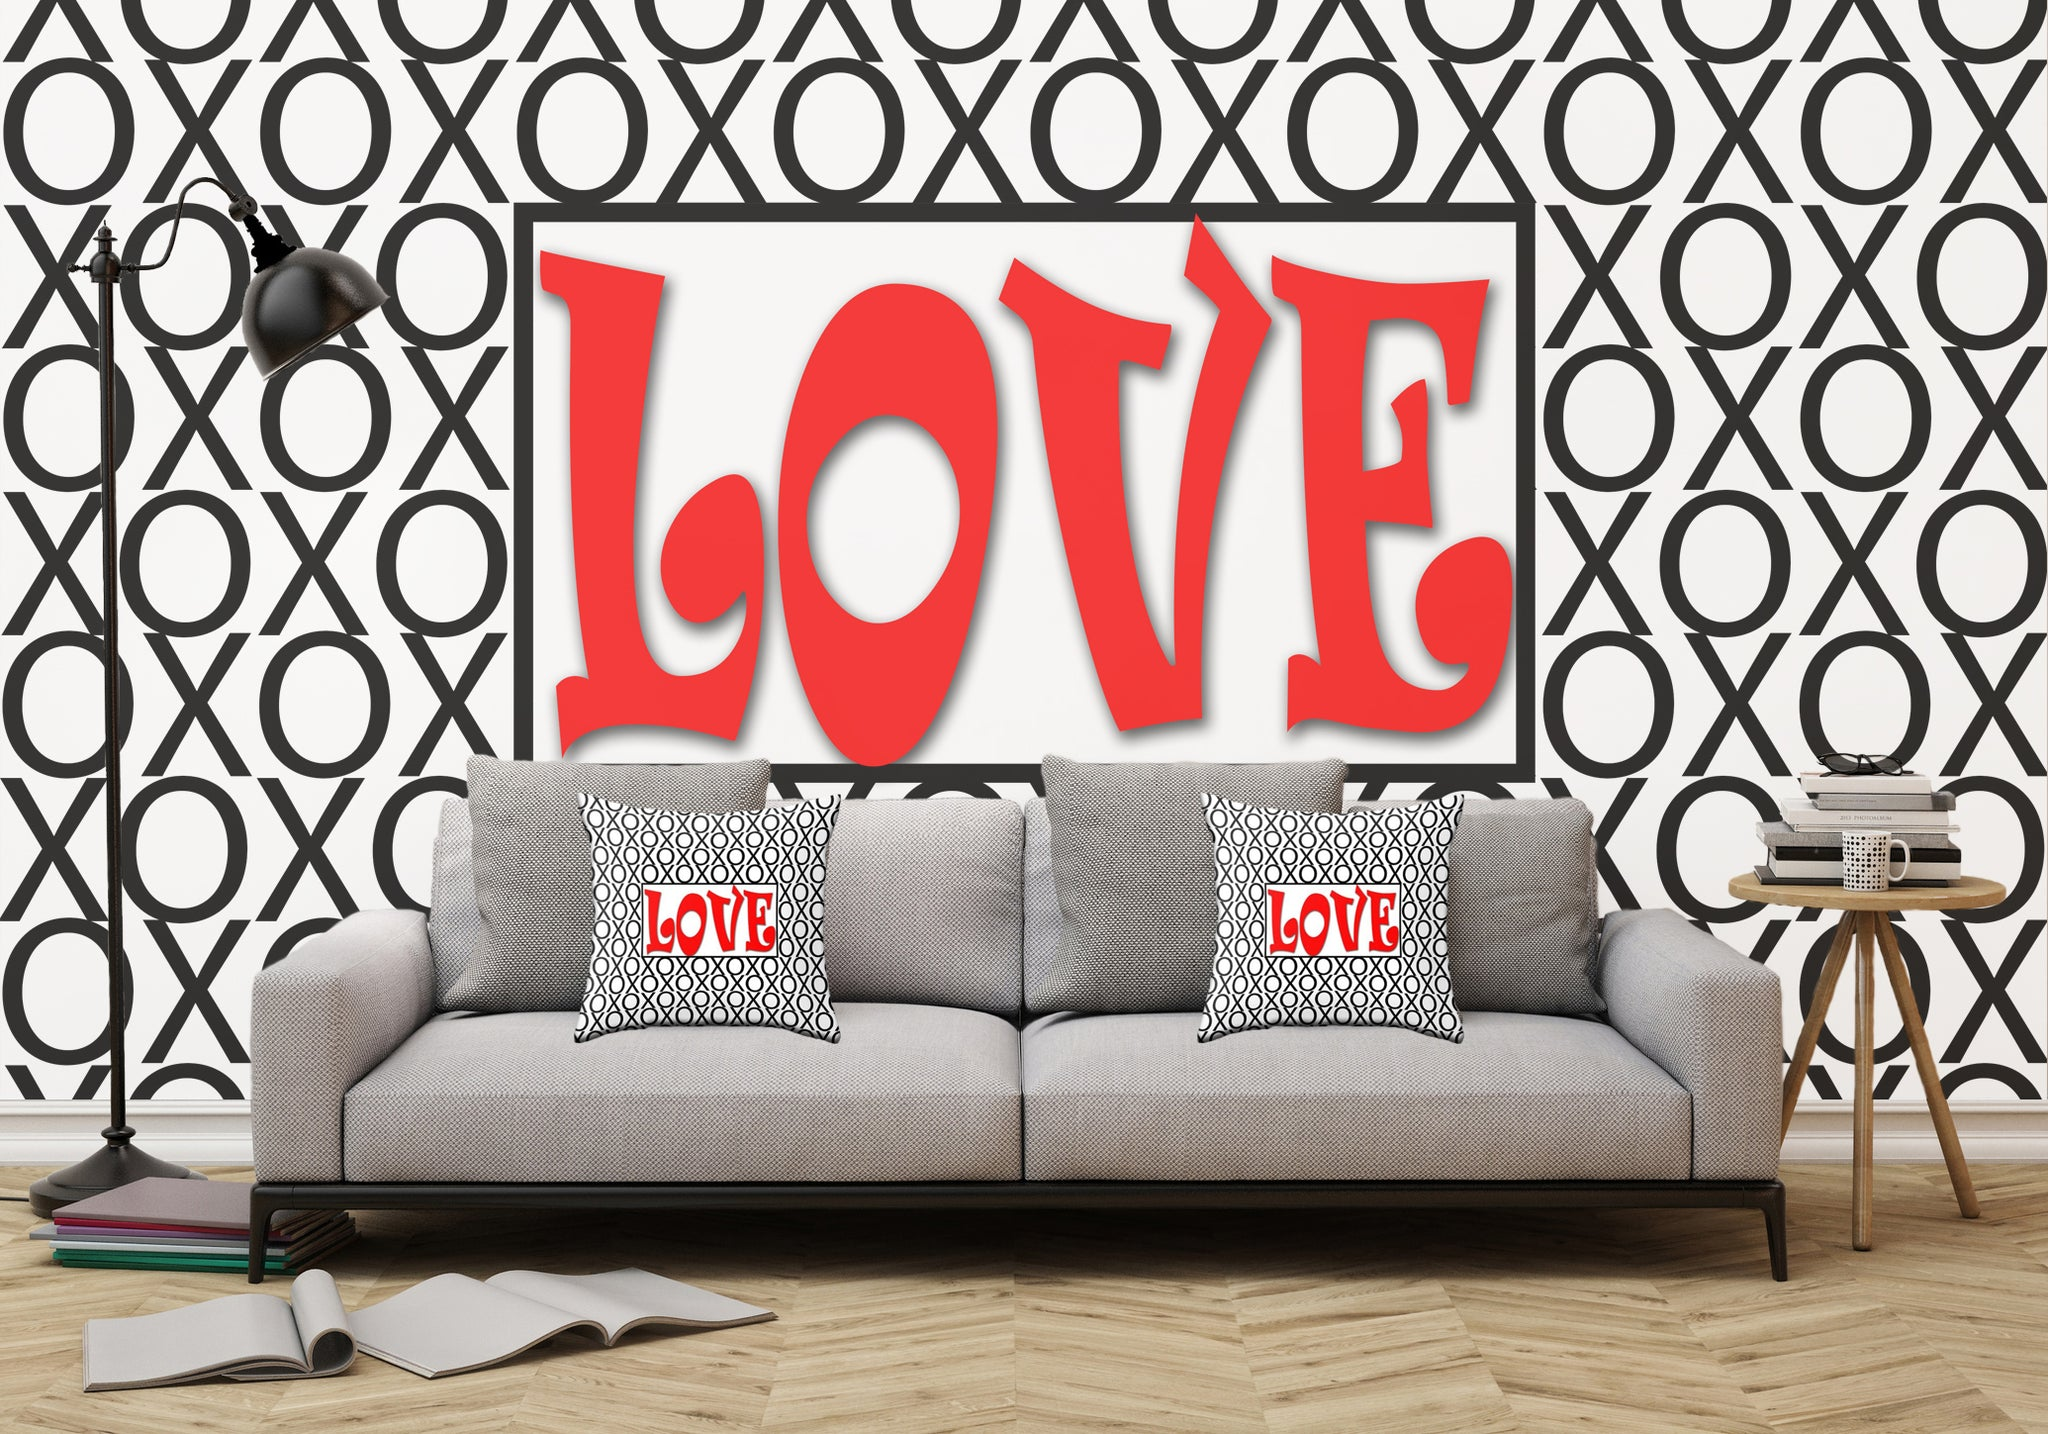 ... Love Xs and Os Pattern Adhesive Wallpaper - Removable Wallpaper - Wall  Sticker - Full Size ... 4ffabdcf5b49